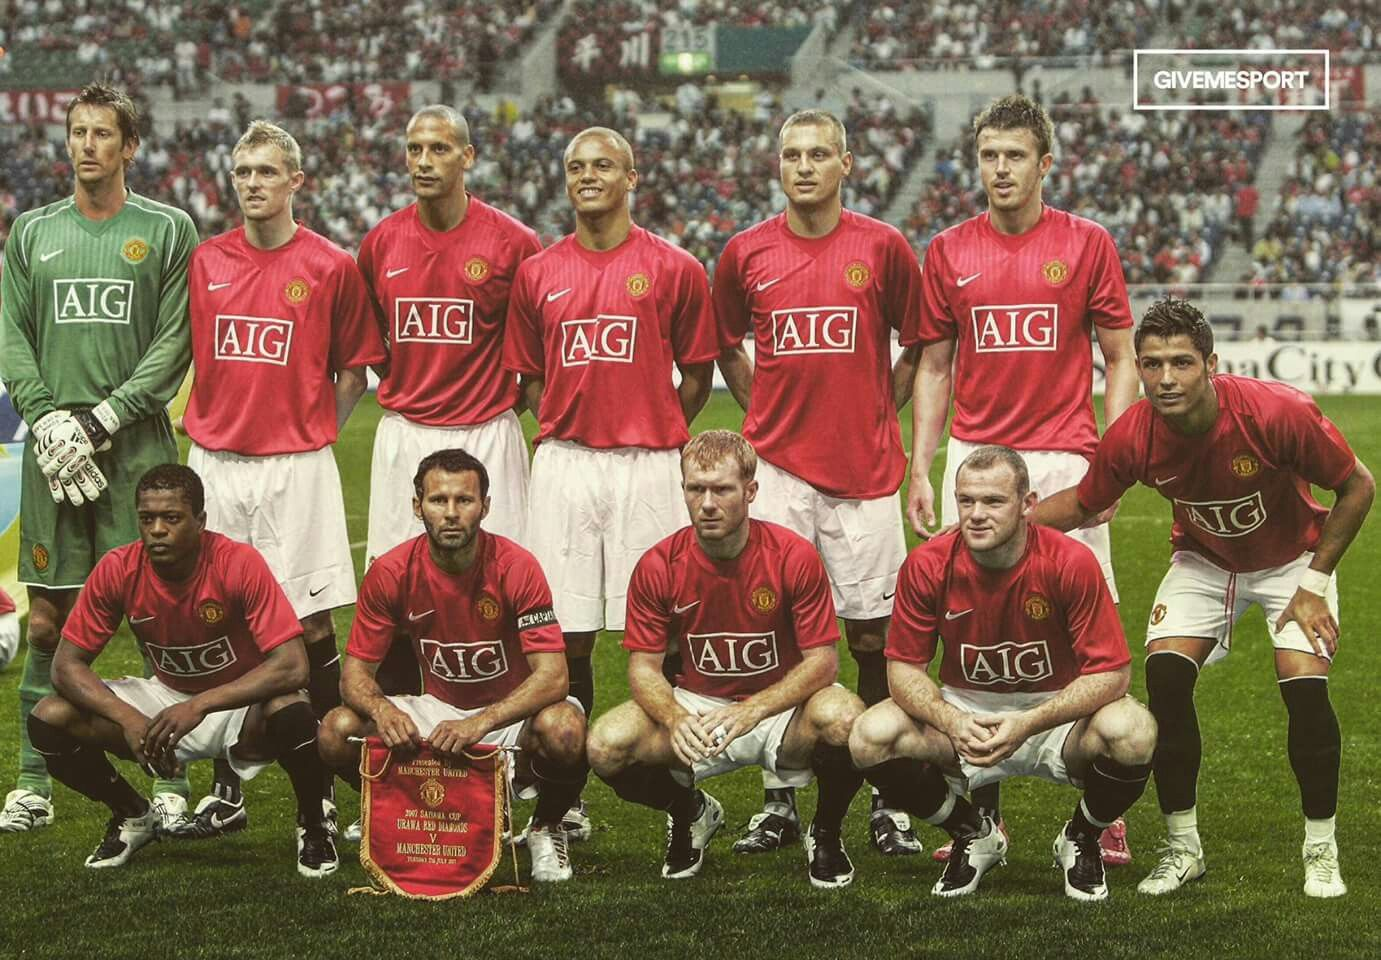 Pin By Kristina Kash On Red Devils Kings Of Manchester Manchester United Team Manchester United Players Manchester United